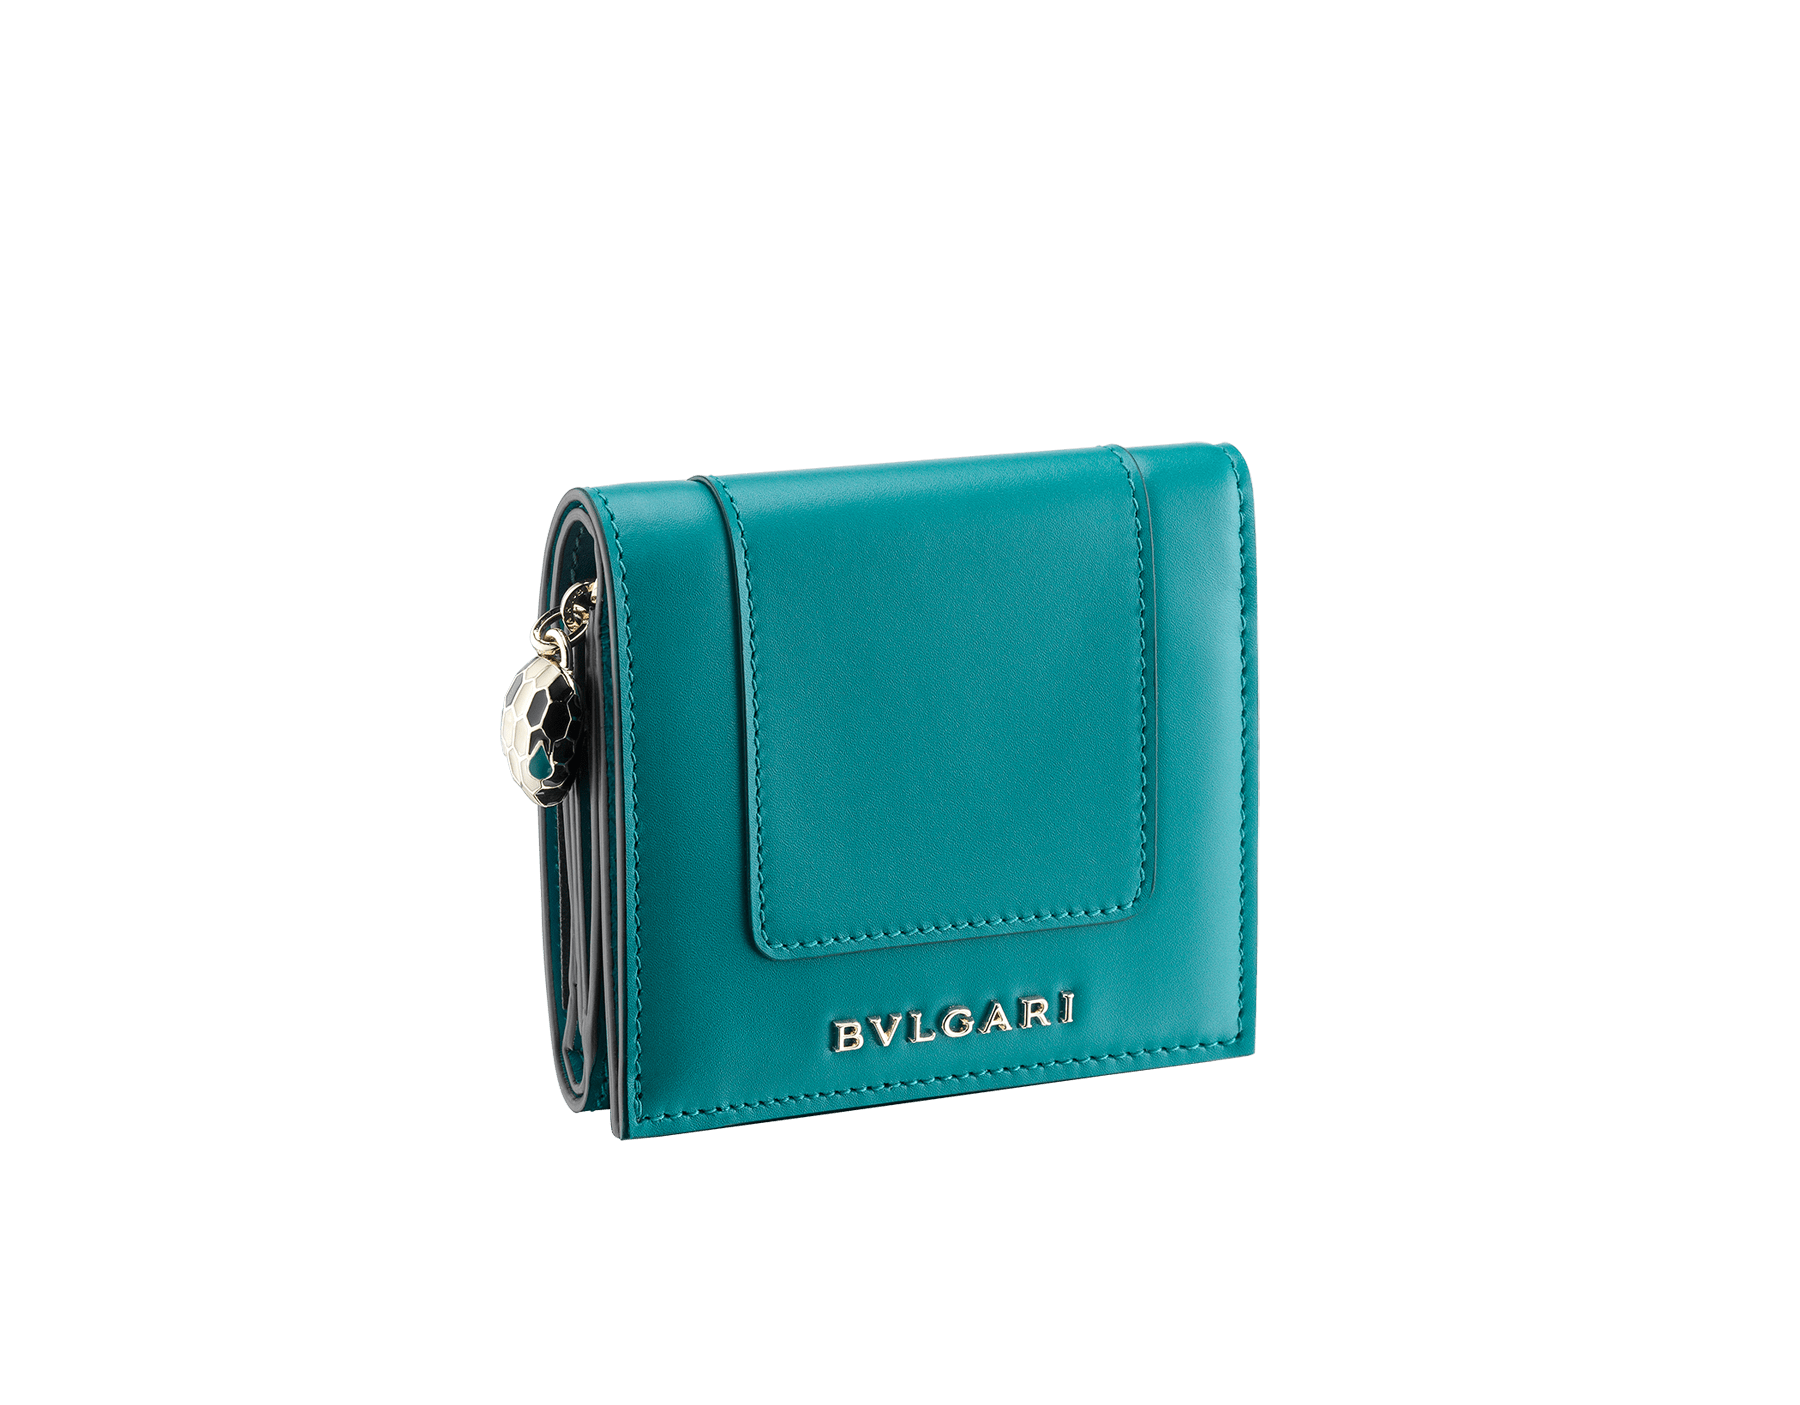 Serpenti Forever super compact wallet in deep jade and tropical turquoise calf leather. Iconic snakehead stud closure in black and white enamel with green malachite enamel eyes. 288034 image 1